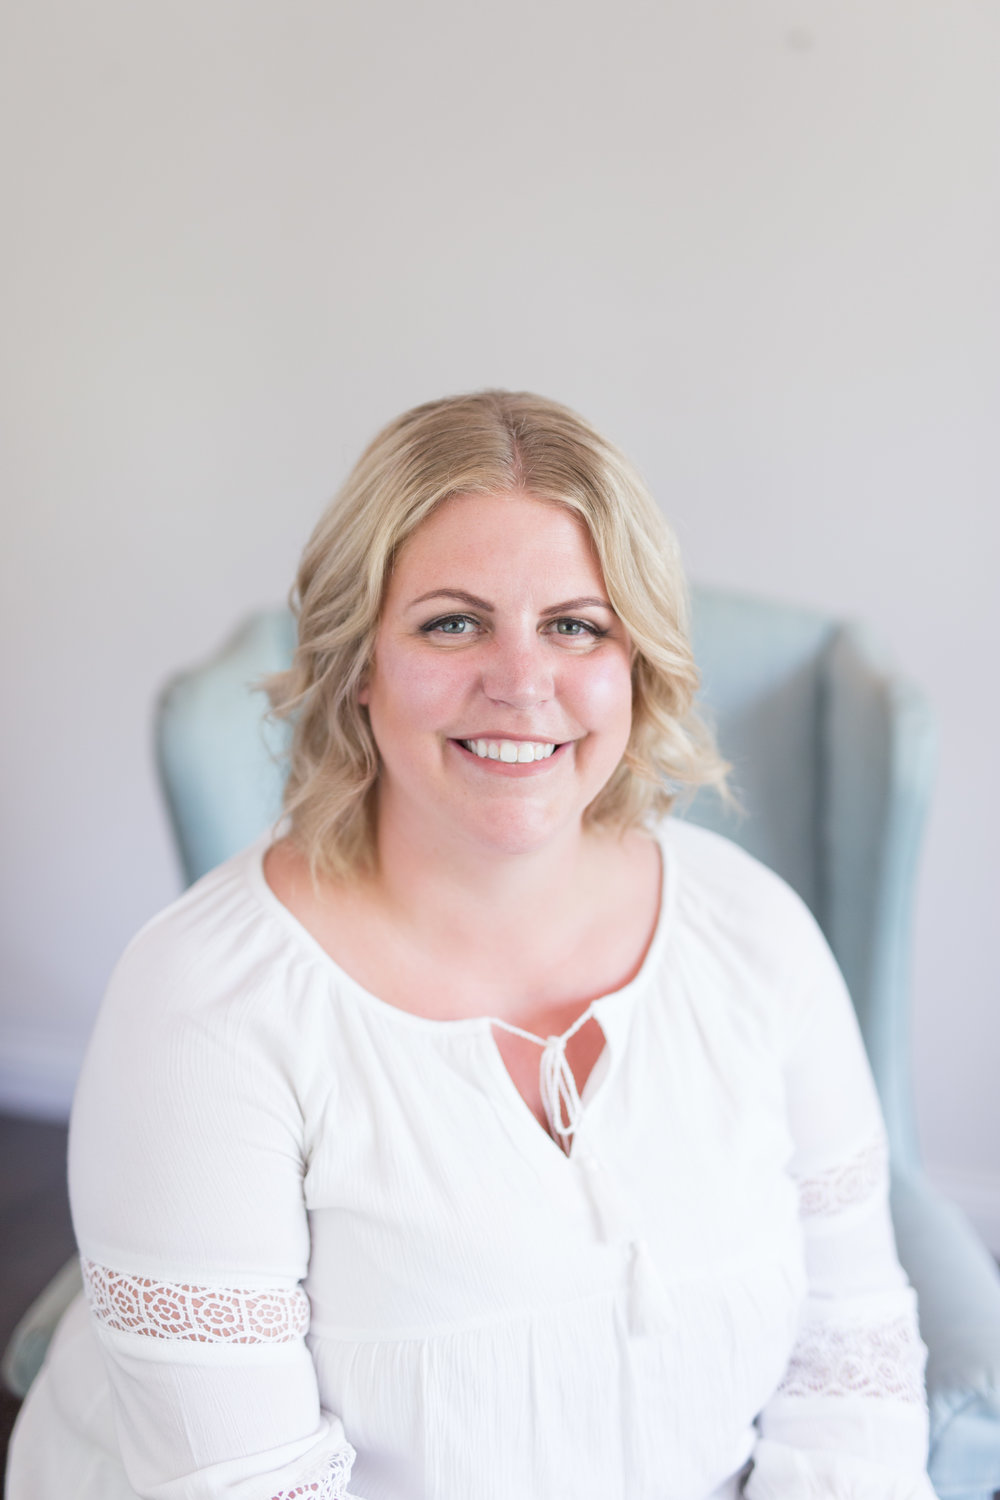 Paige Barlow Birth Doula Postpartum Doula Breastfeeding Support Calgary